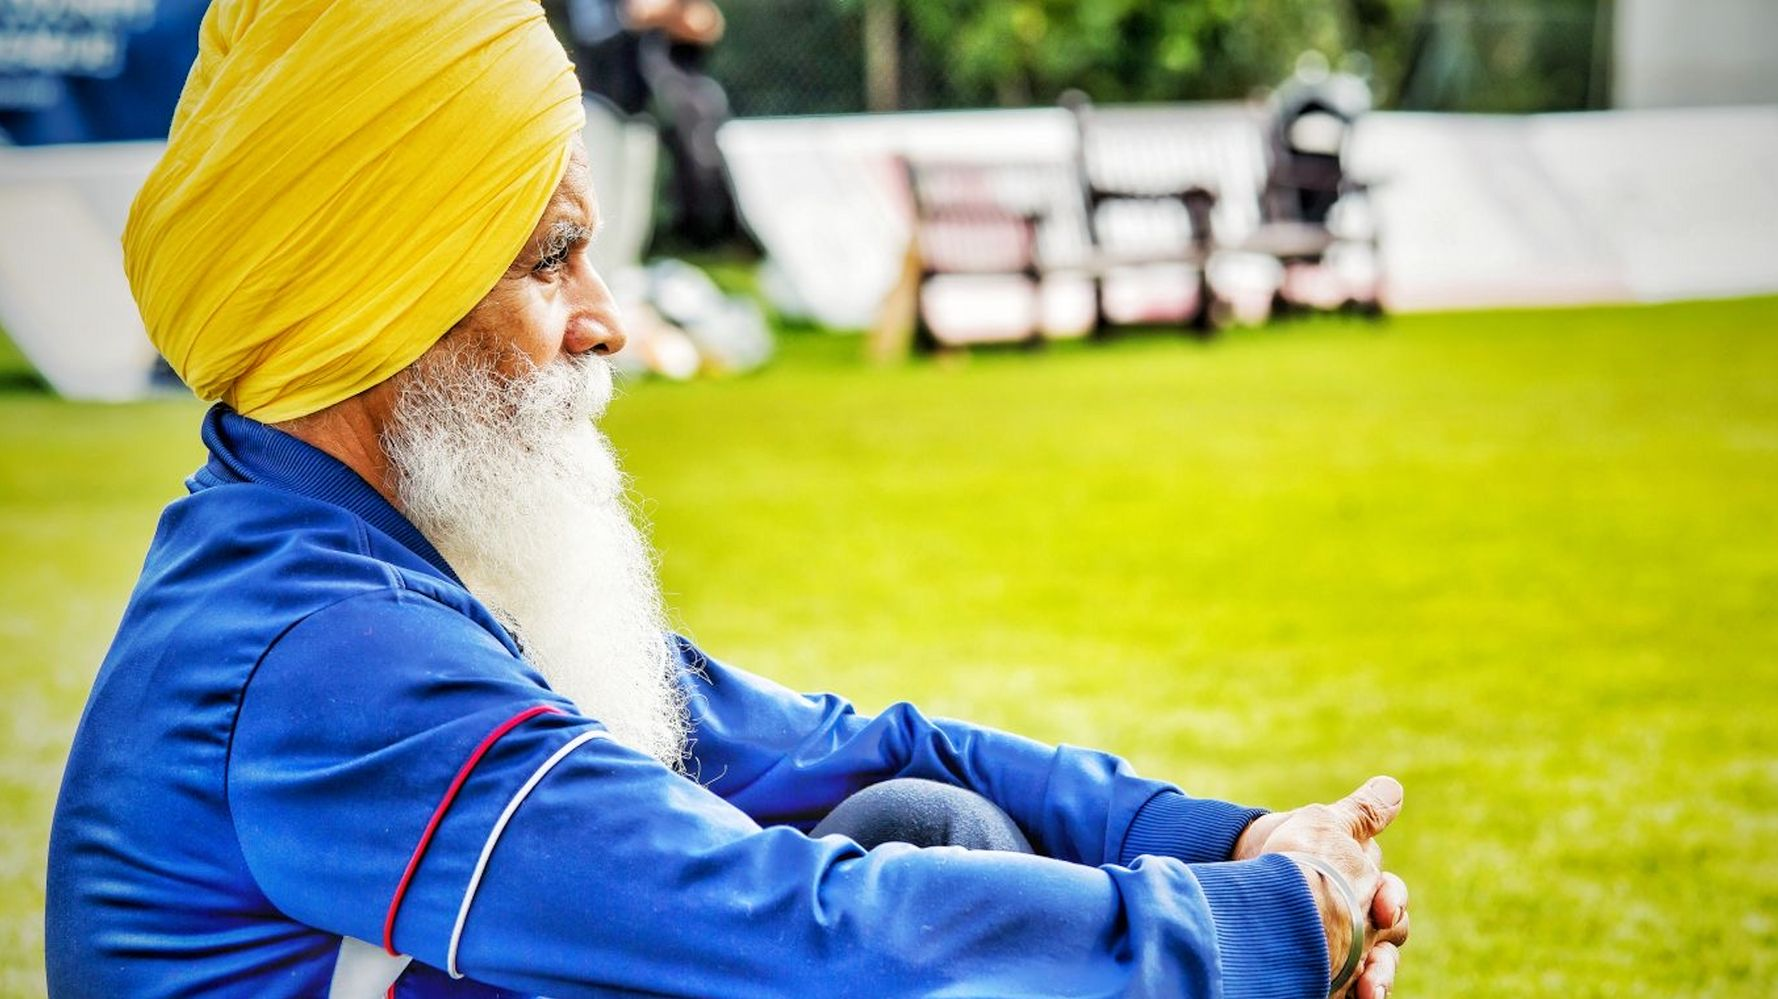 The Skipping Sikh' Is Urging People To Keep Exercising During ...